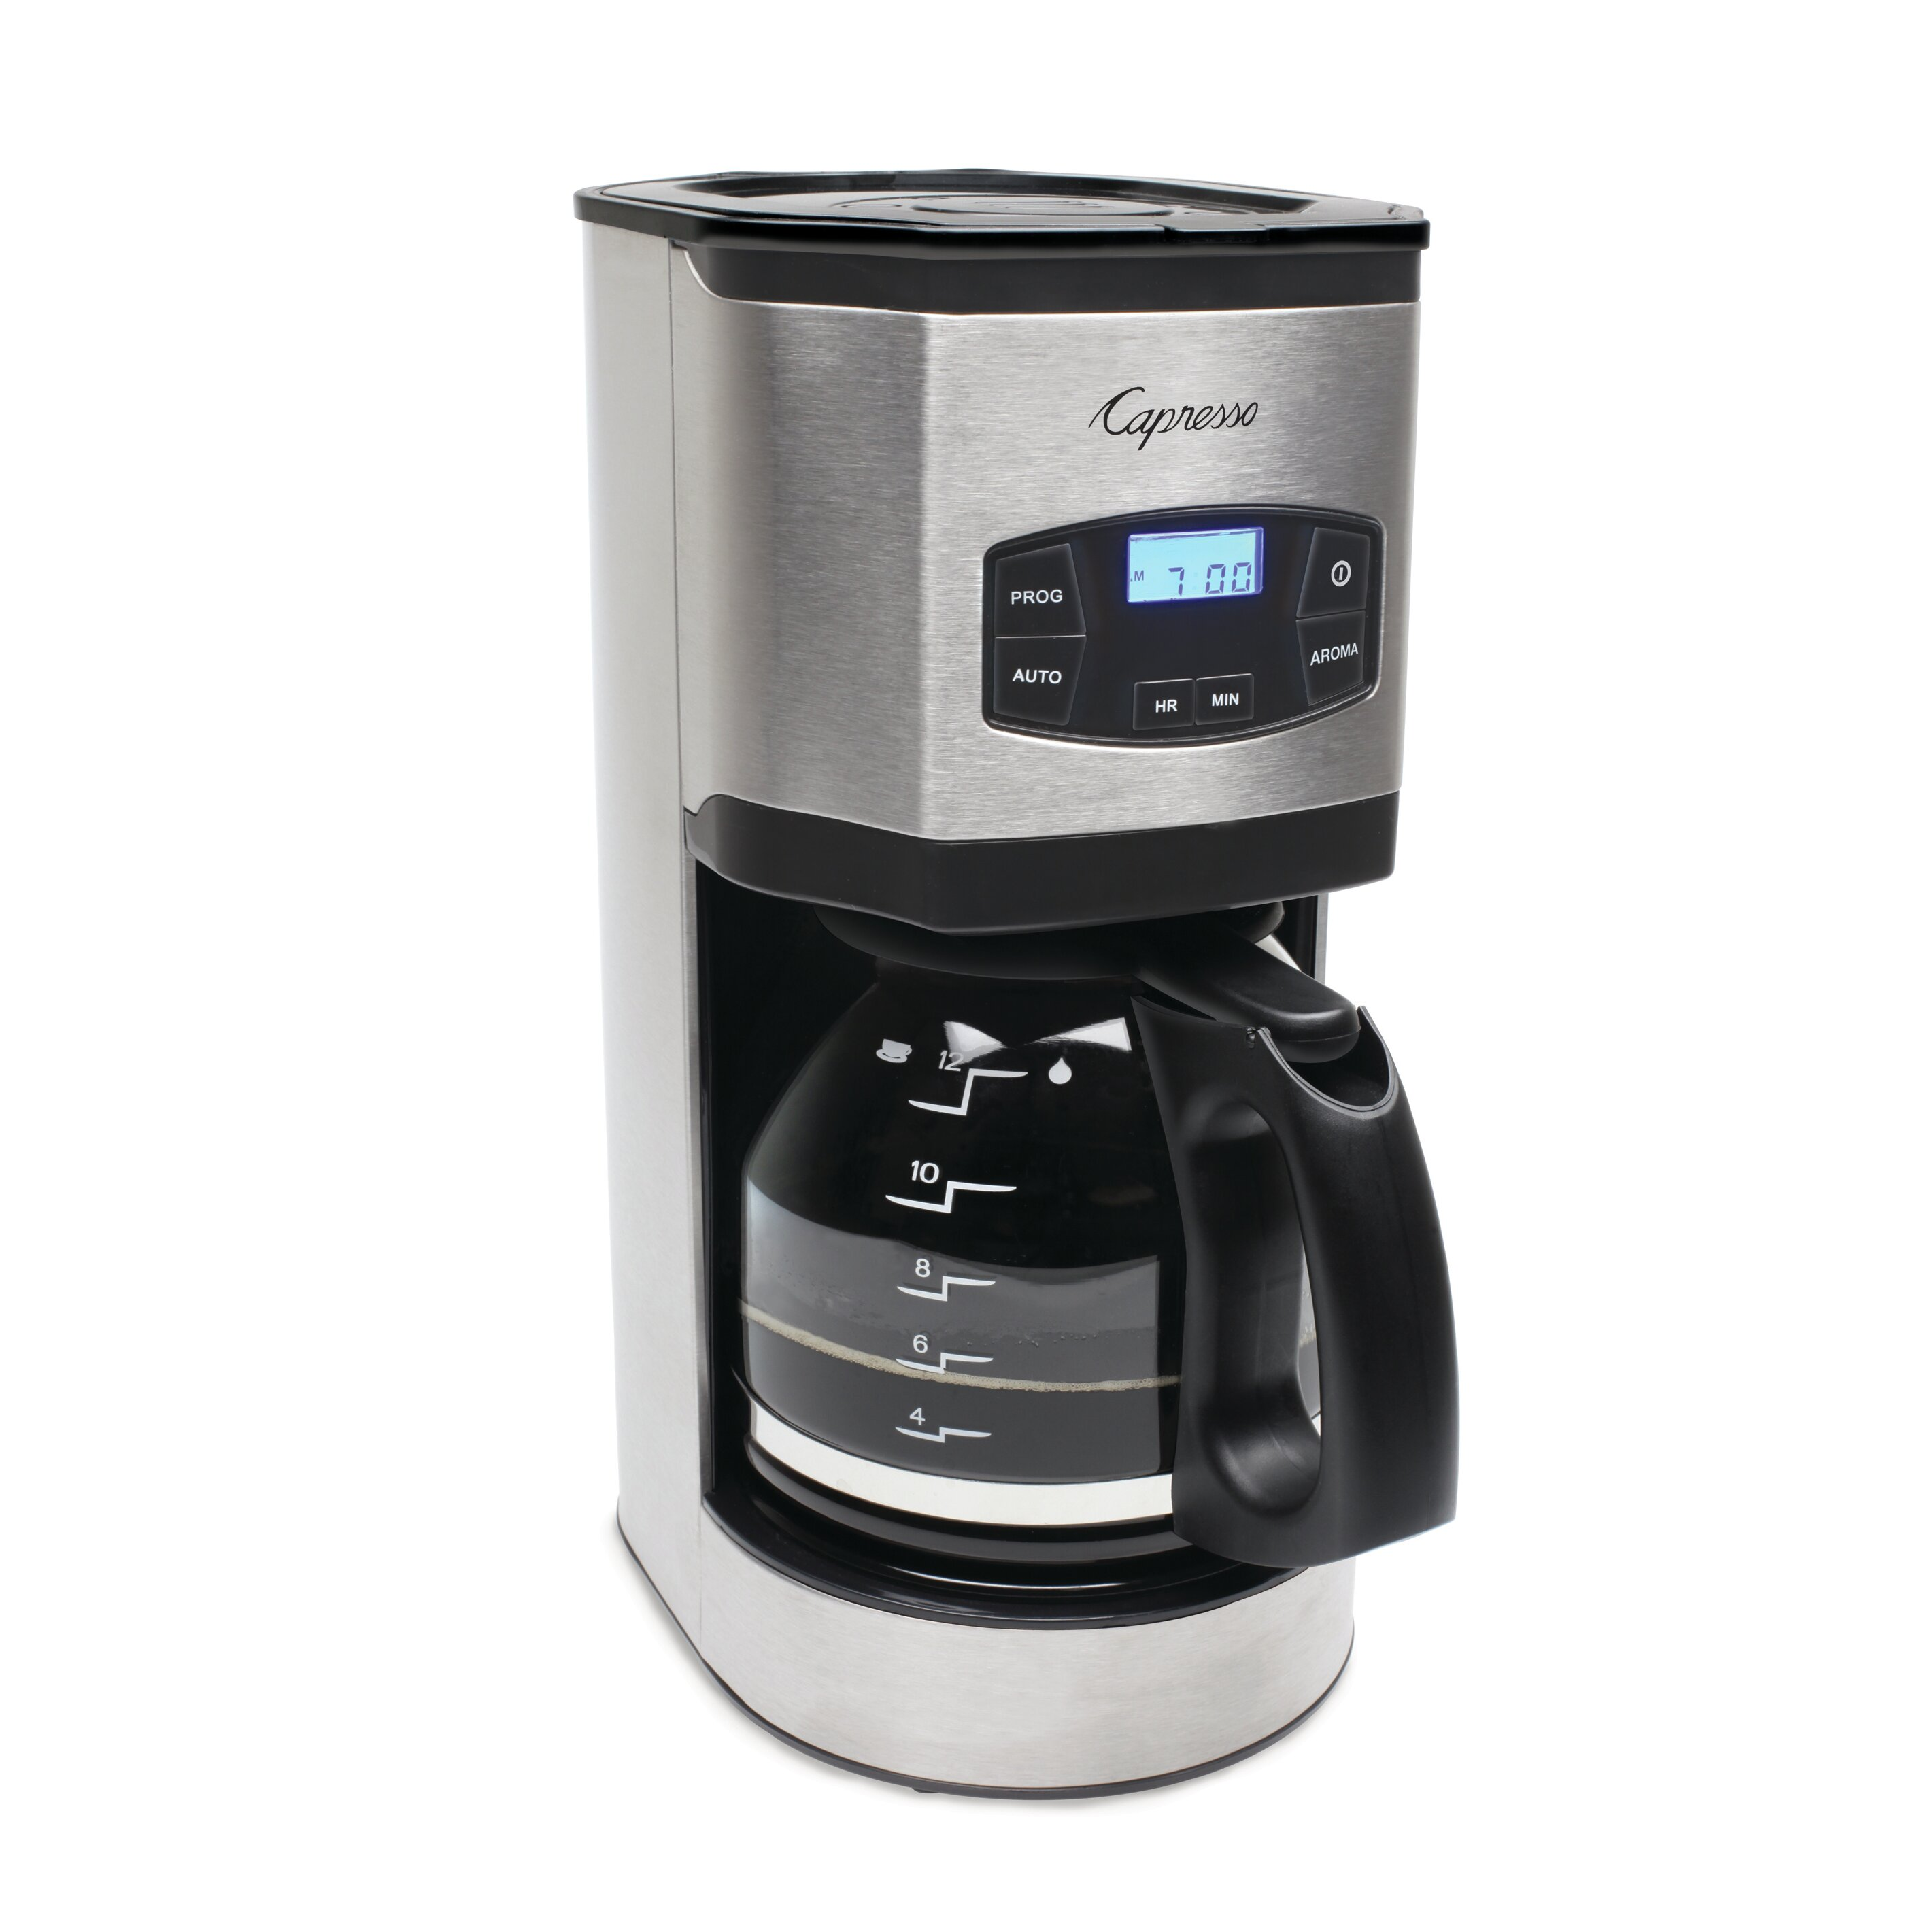 Capresso Coffee Maker Sale